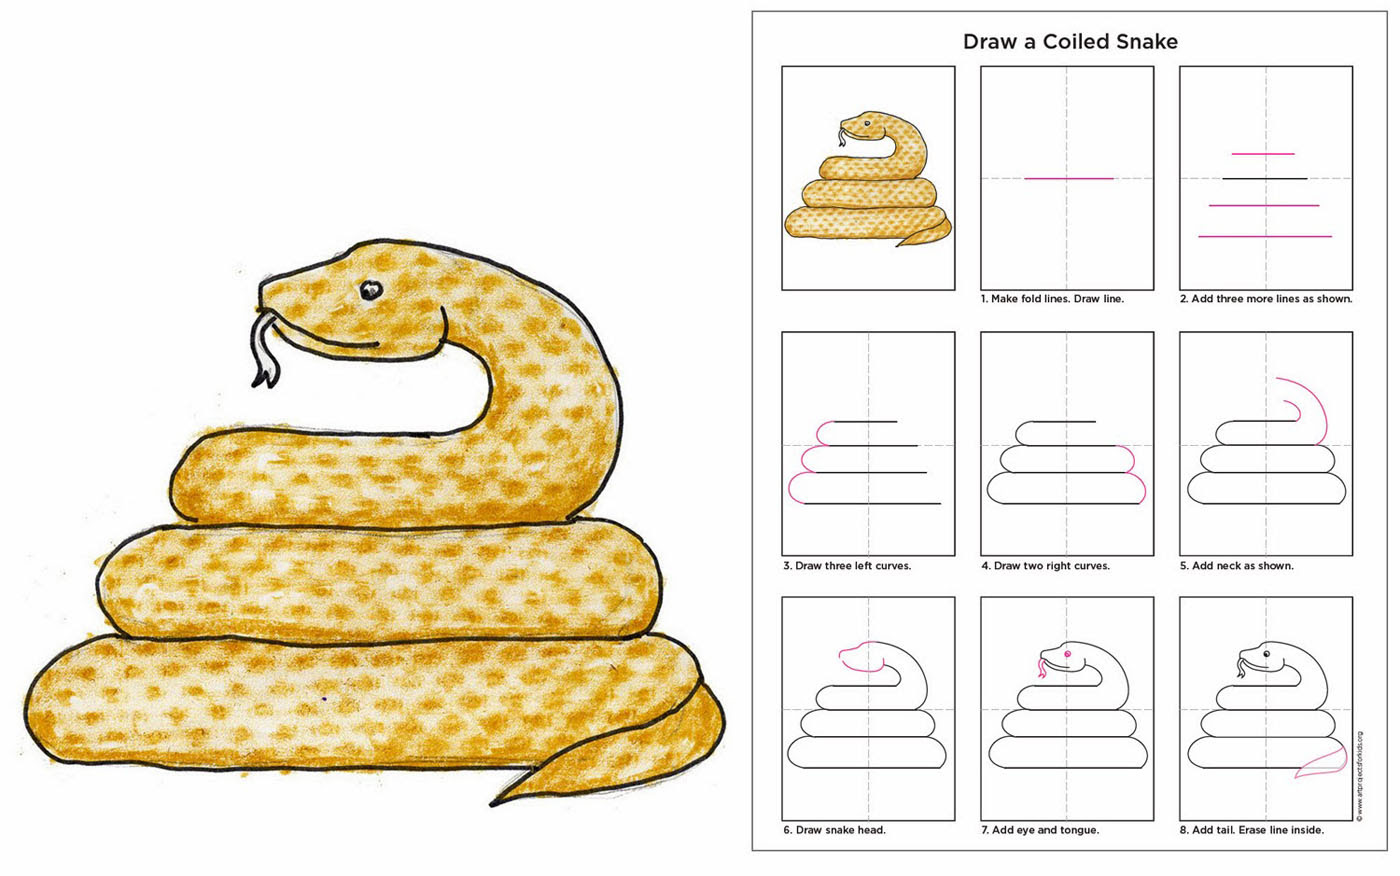 Draw a Coiled Snake - Art Projects for Kids